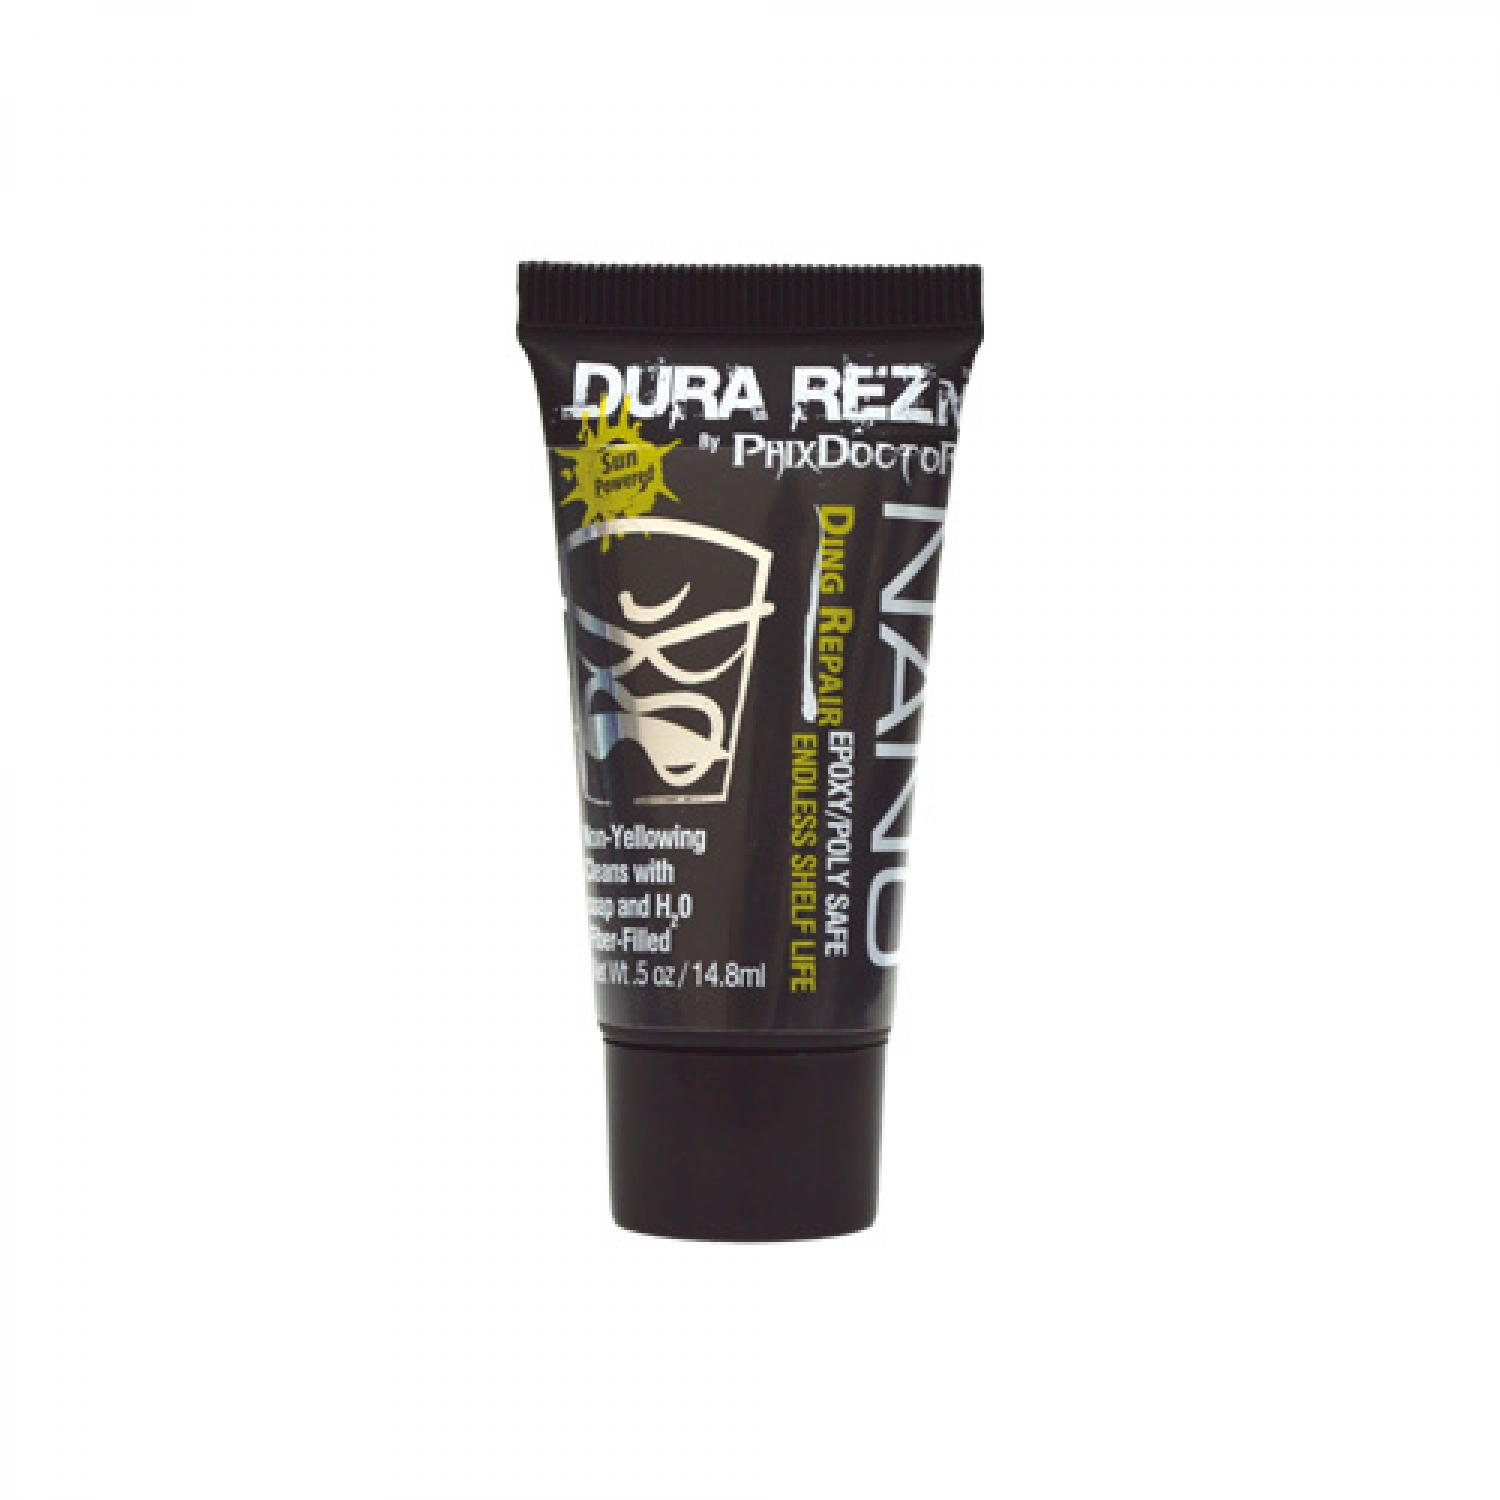 Phix Doctor DURA REZN 0.5oz/14.8ml